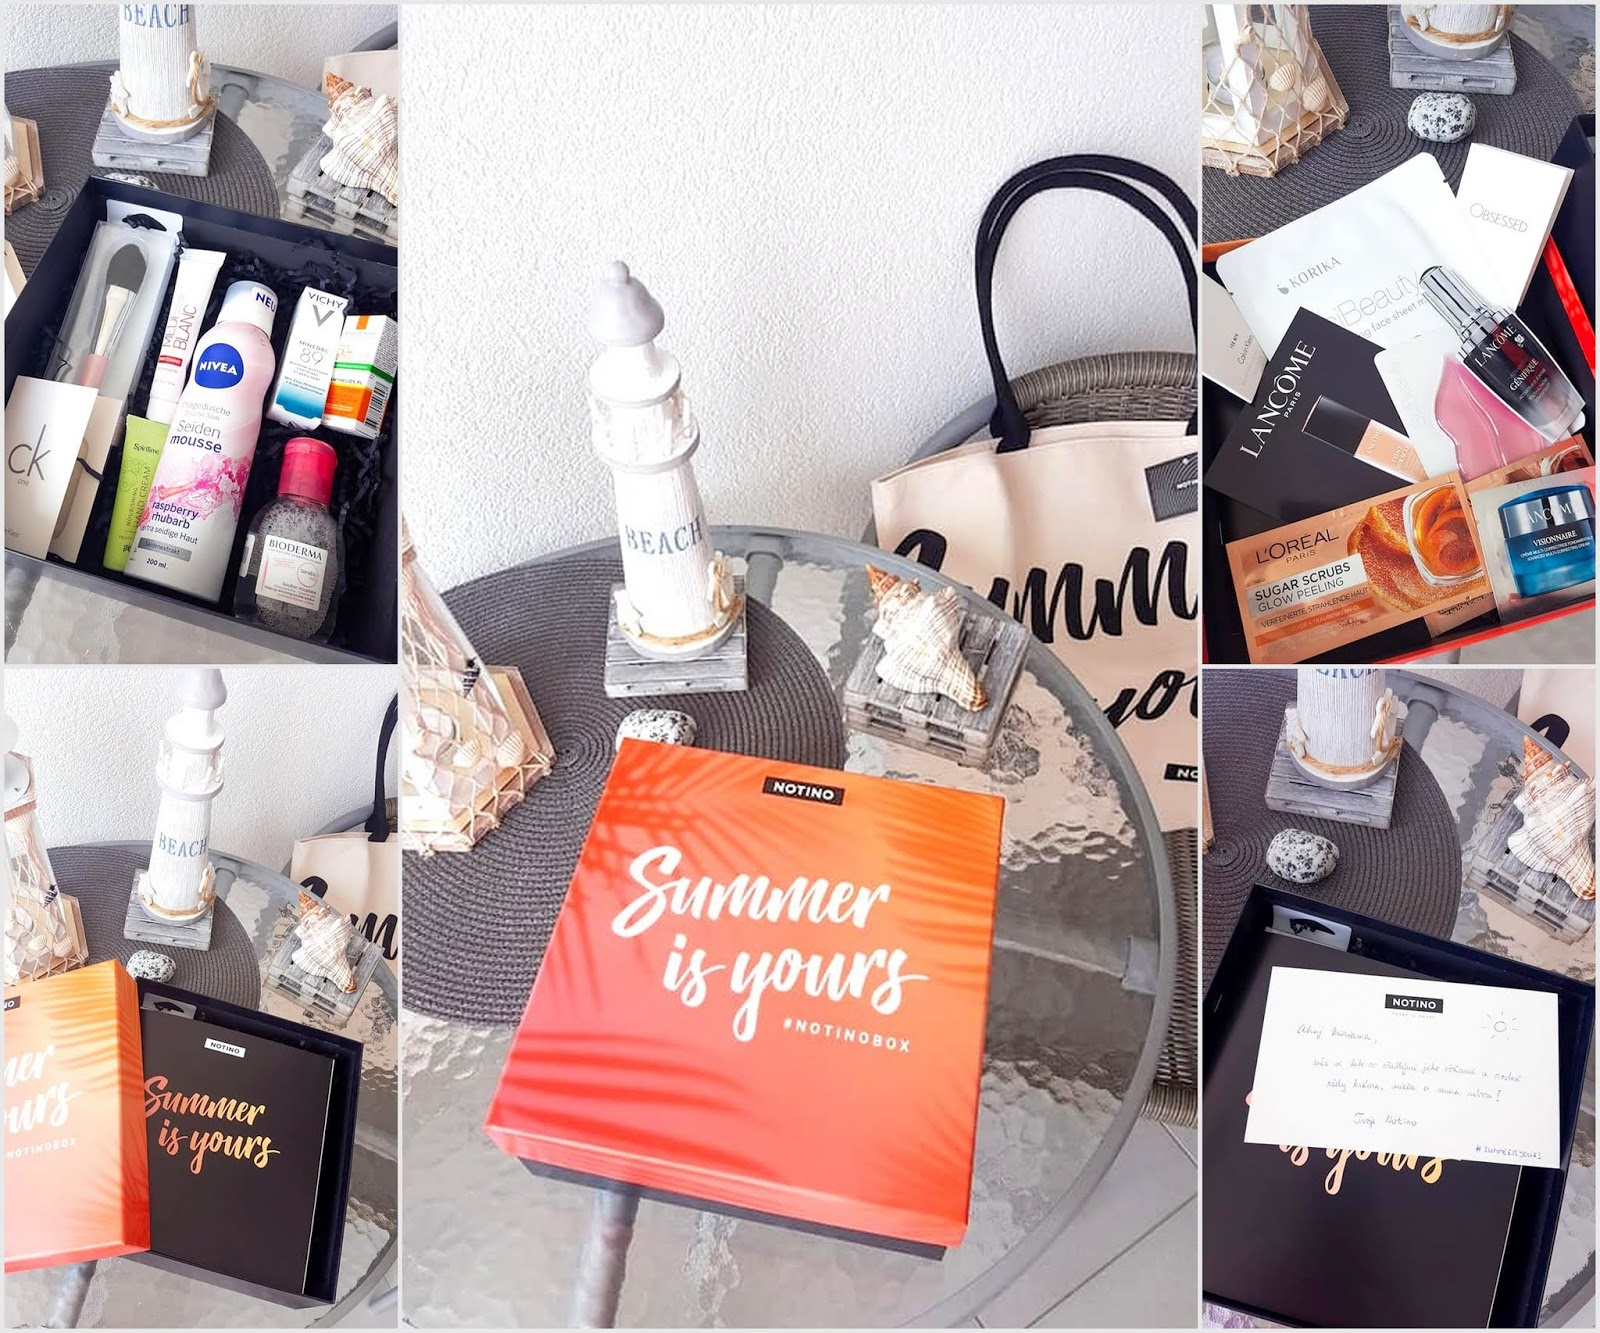 kozmeticka sada notino summer box